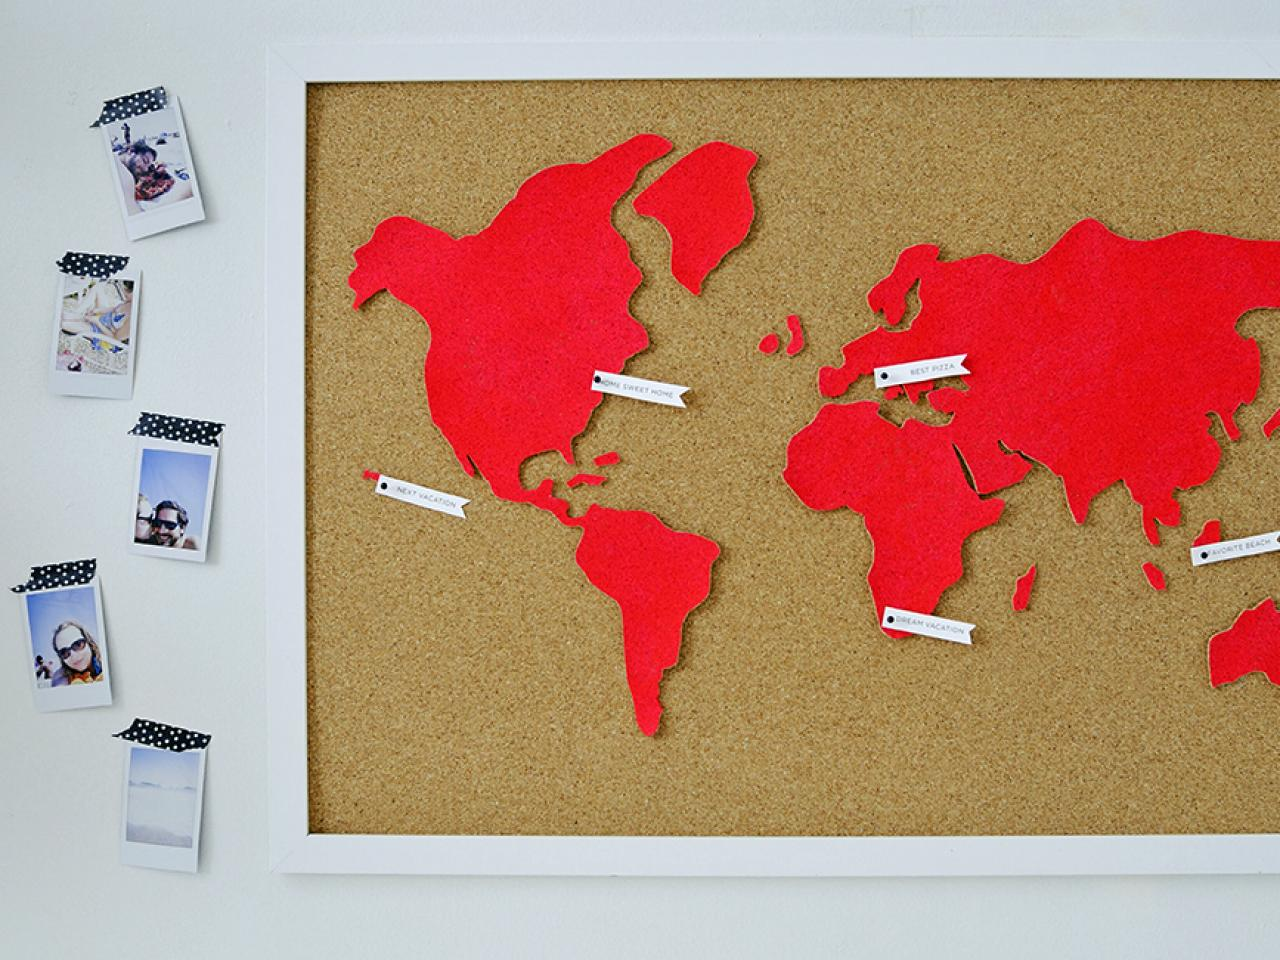 Diy wall art make a custom corkboard world map hgtv hang and enjoy gumiabroncs Choice Image